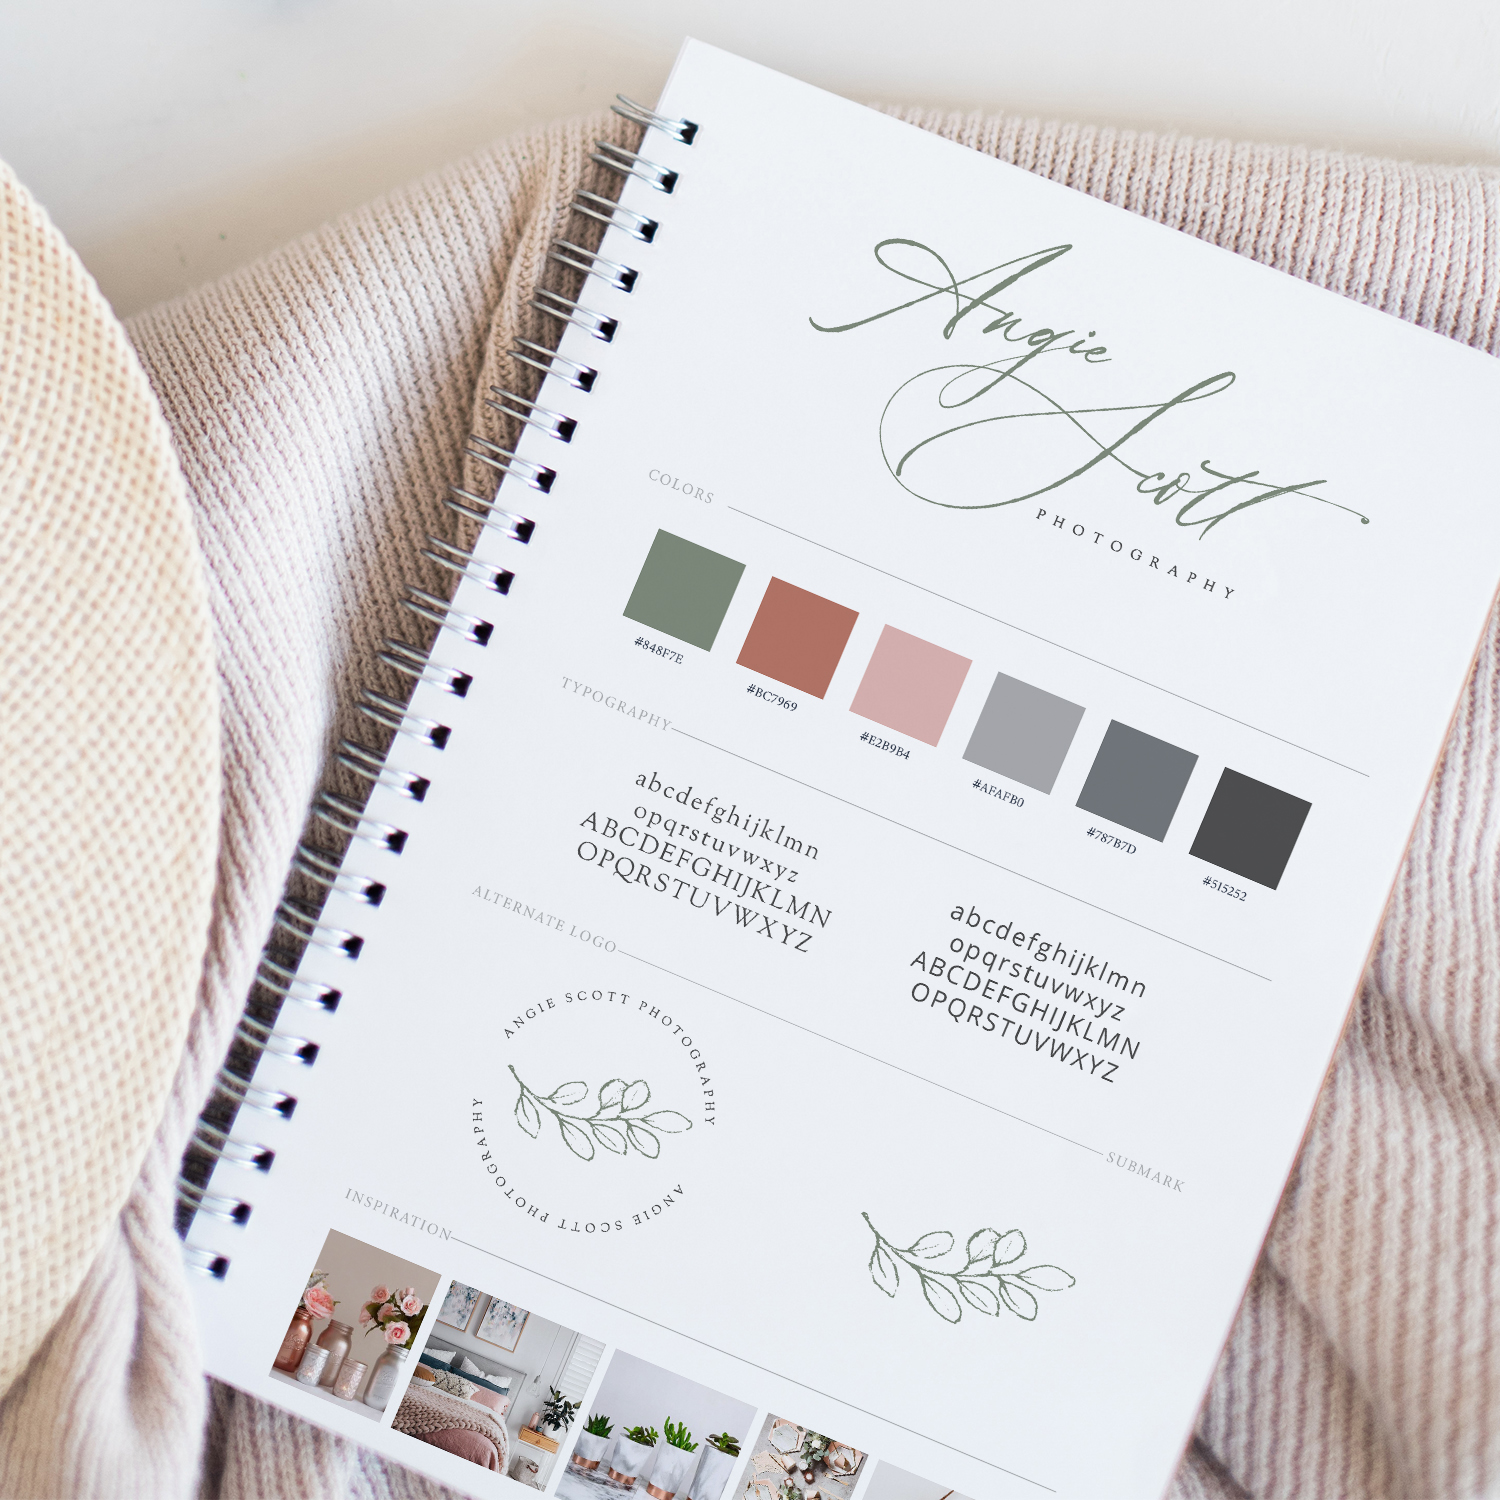 Brand Board Mockup for Angie Scott Photography - Option 2.jpg